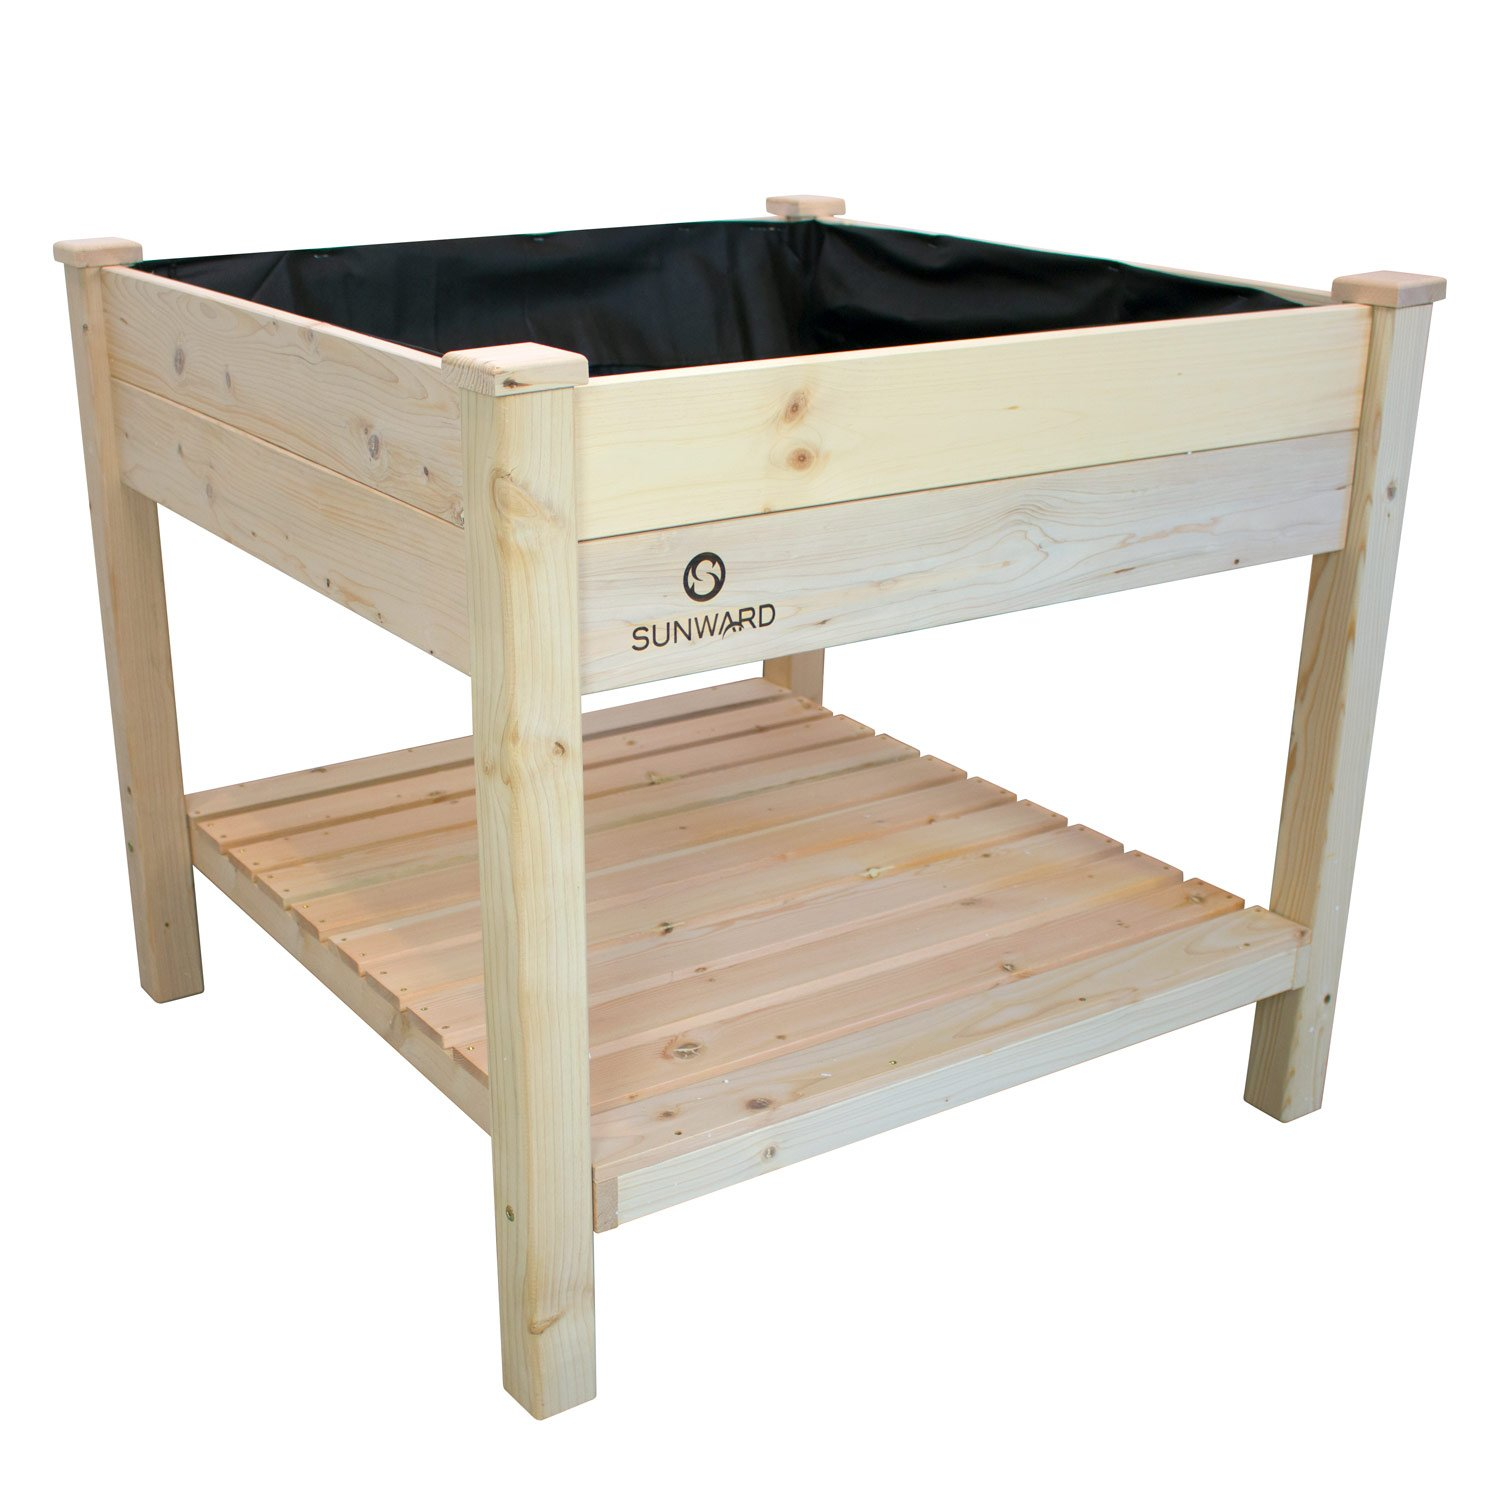 Sunward Patio Raised Garden Bed Kit / 36'' x 36'' Toolless Construction For Easy Assembly / Perfect For Summer Gardening!